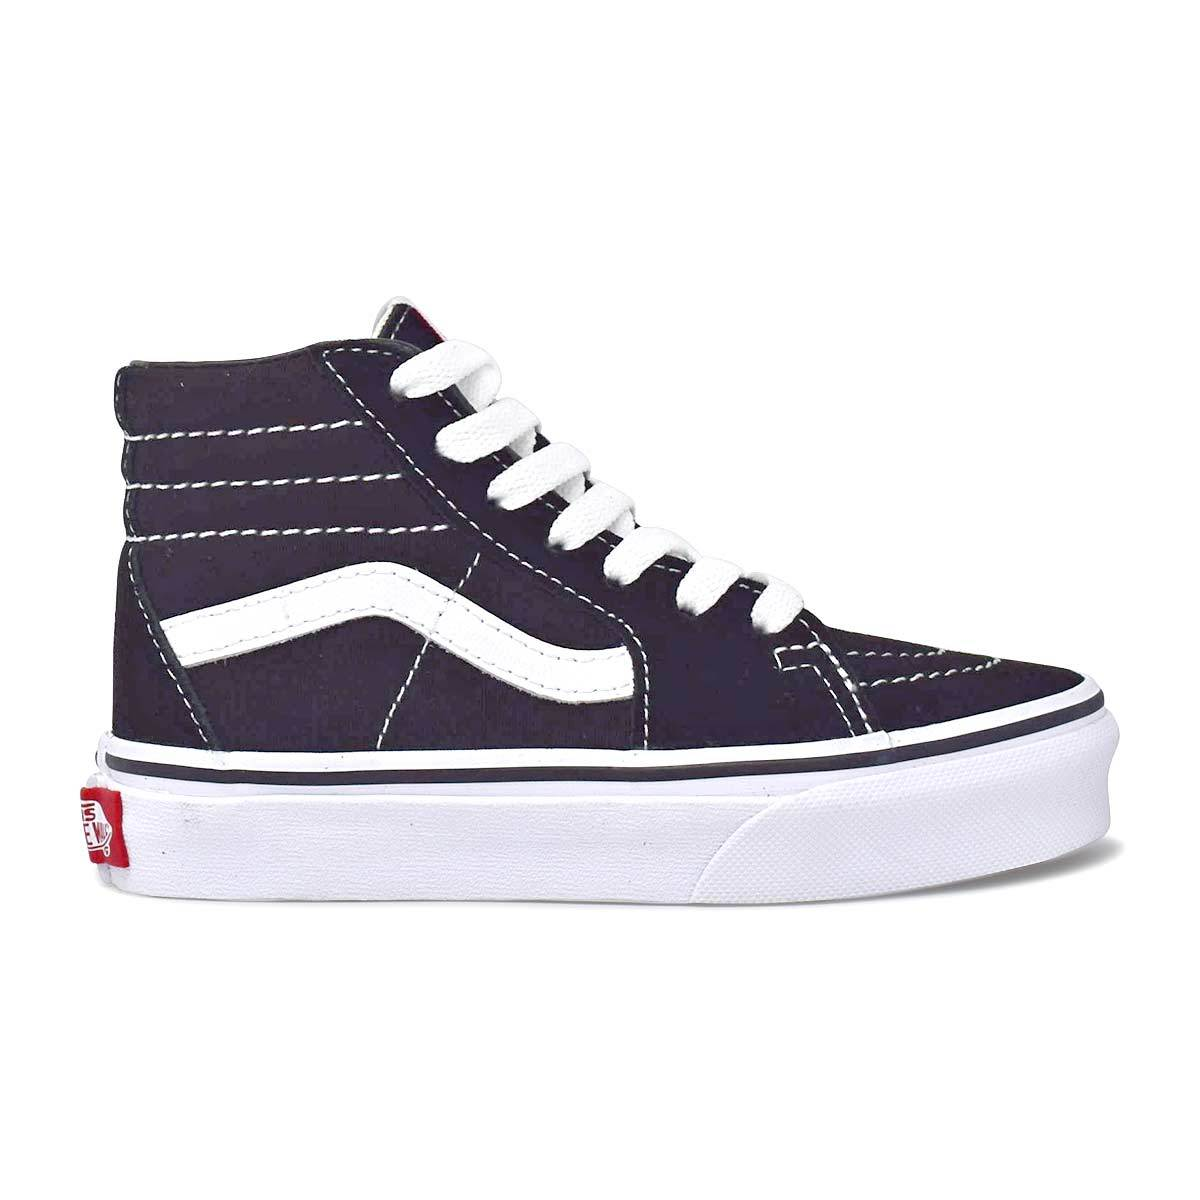 Little Kids Preschool Canvas Sk8-Hi Black